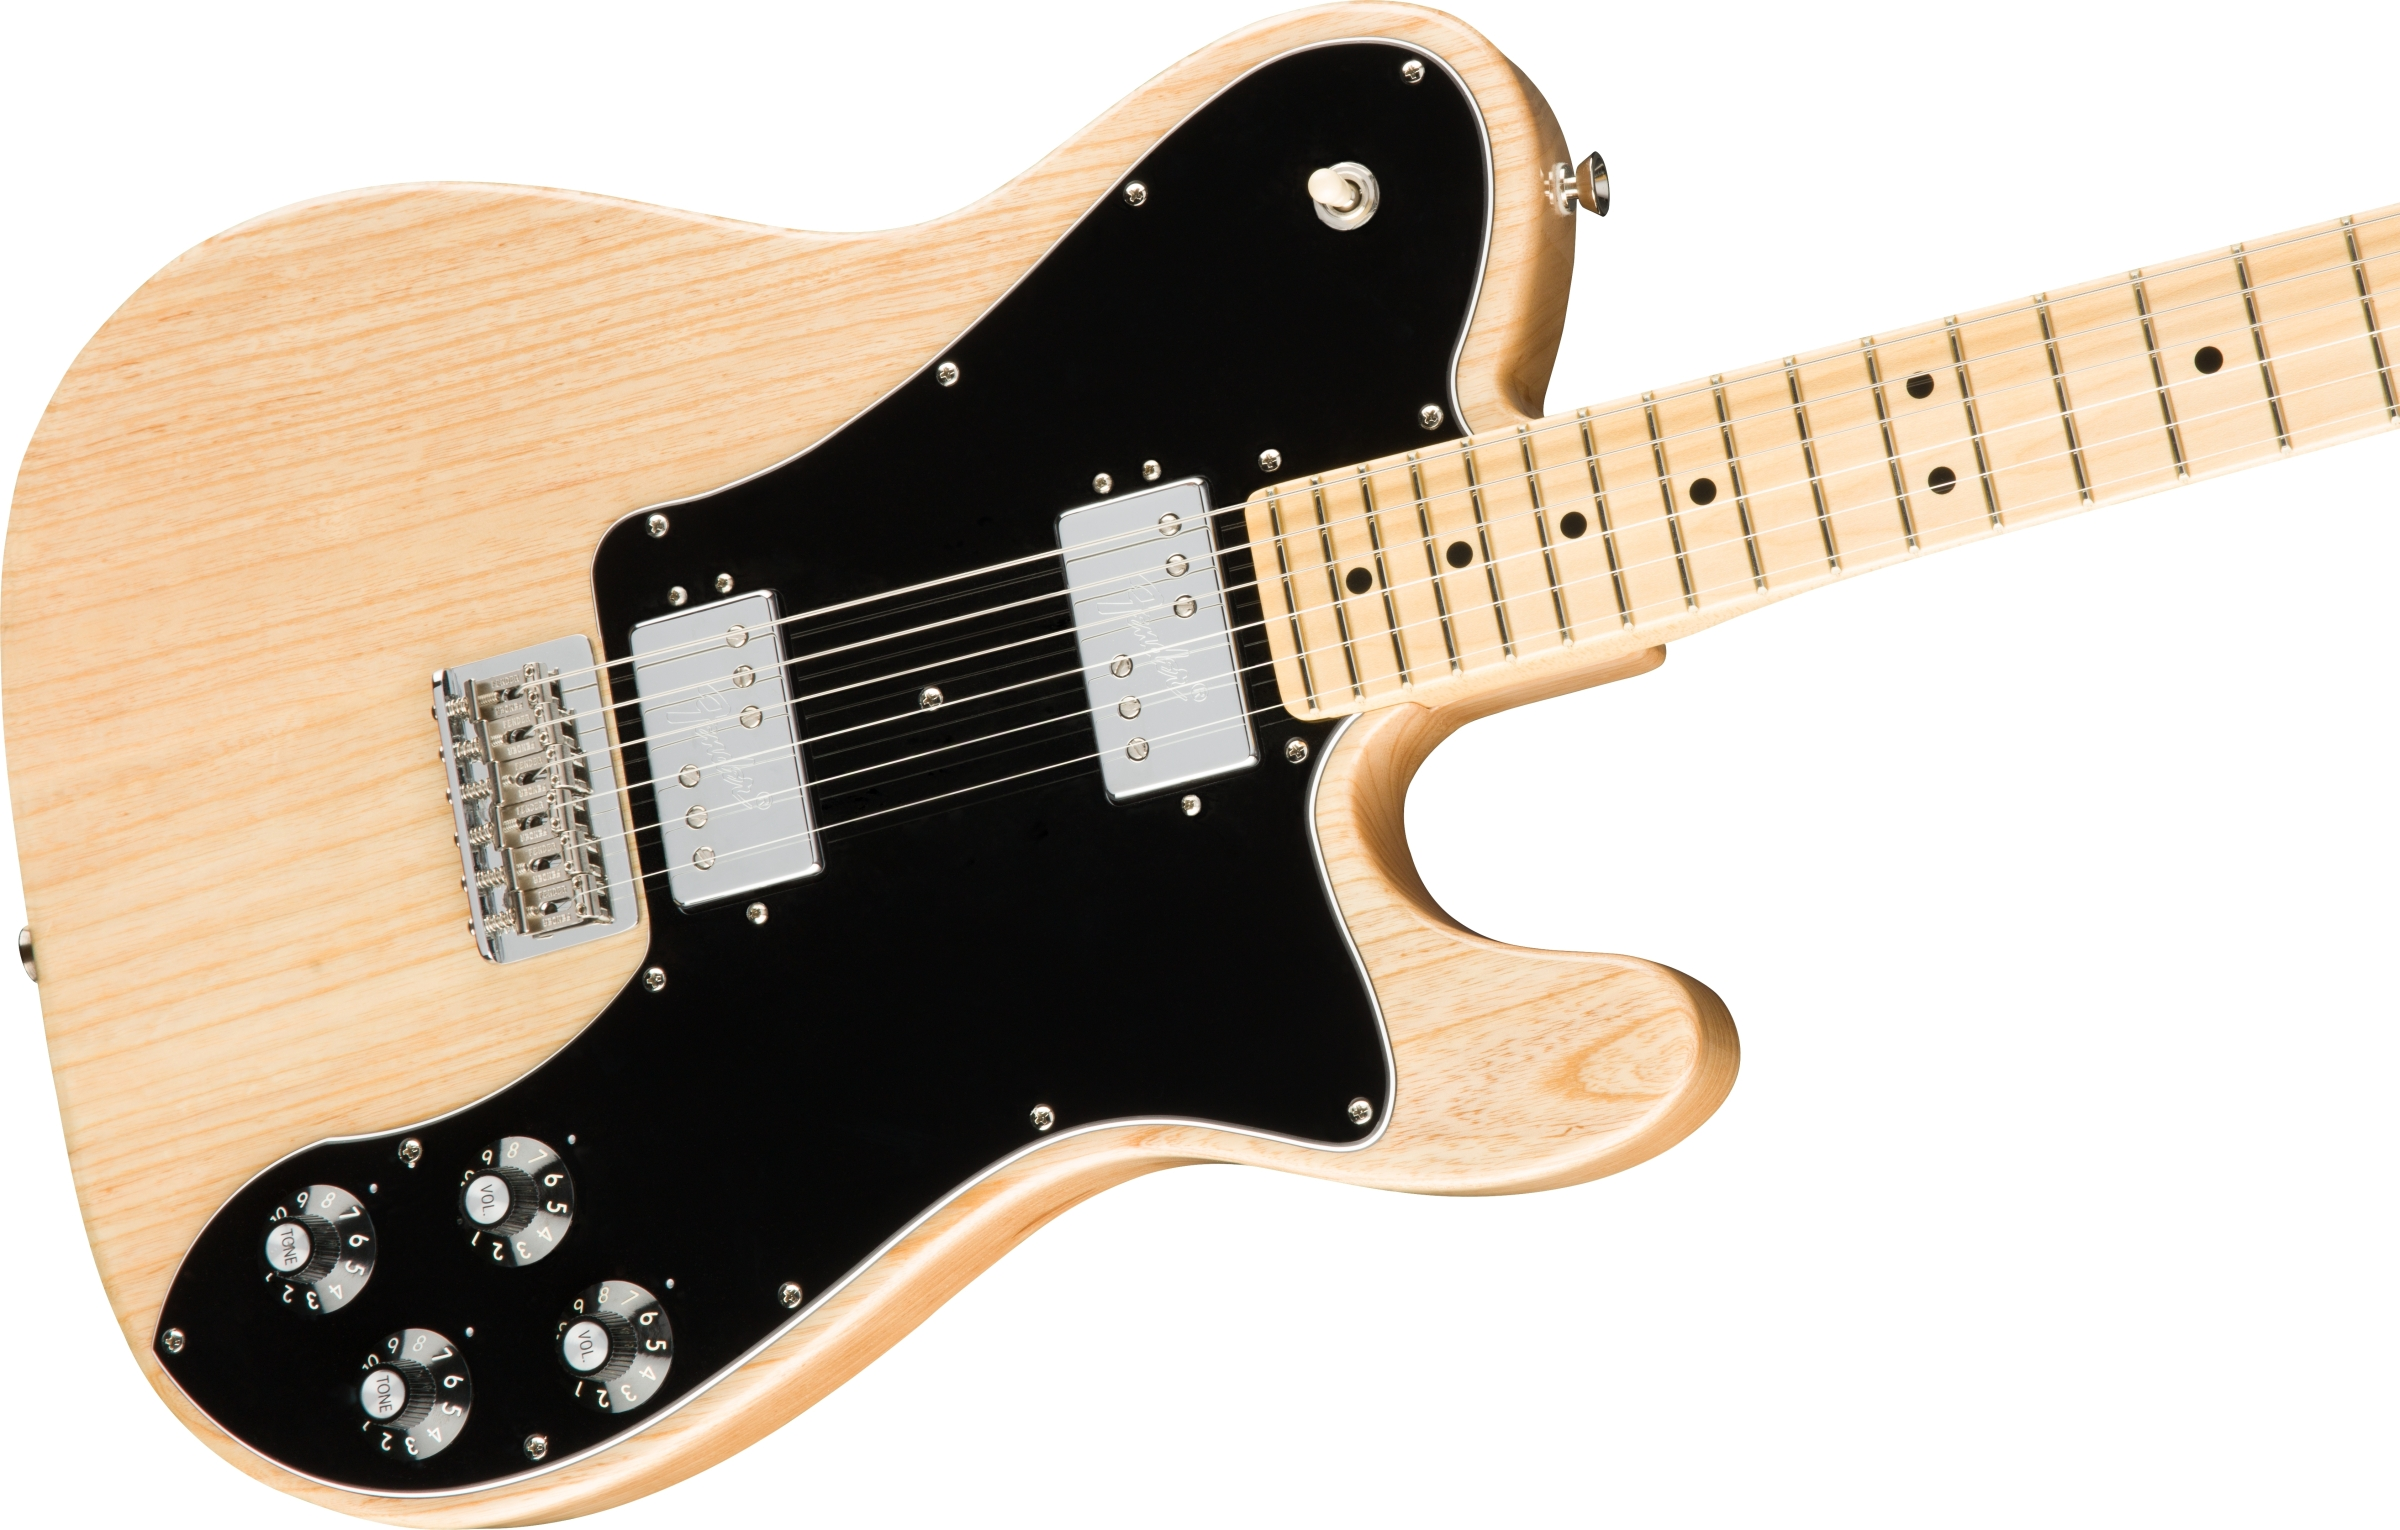 fender american pro telecaster deluxe shawbucker maple fingerboard natural. Black Bedroom Furniture Sets. Home Design Ideas